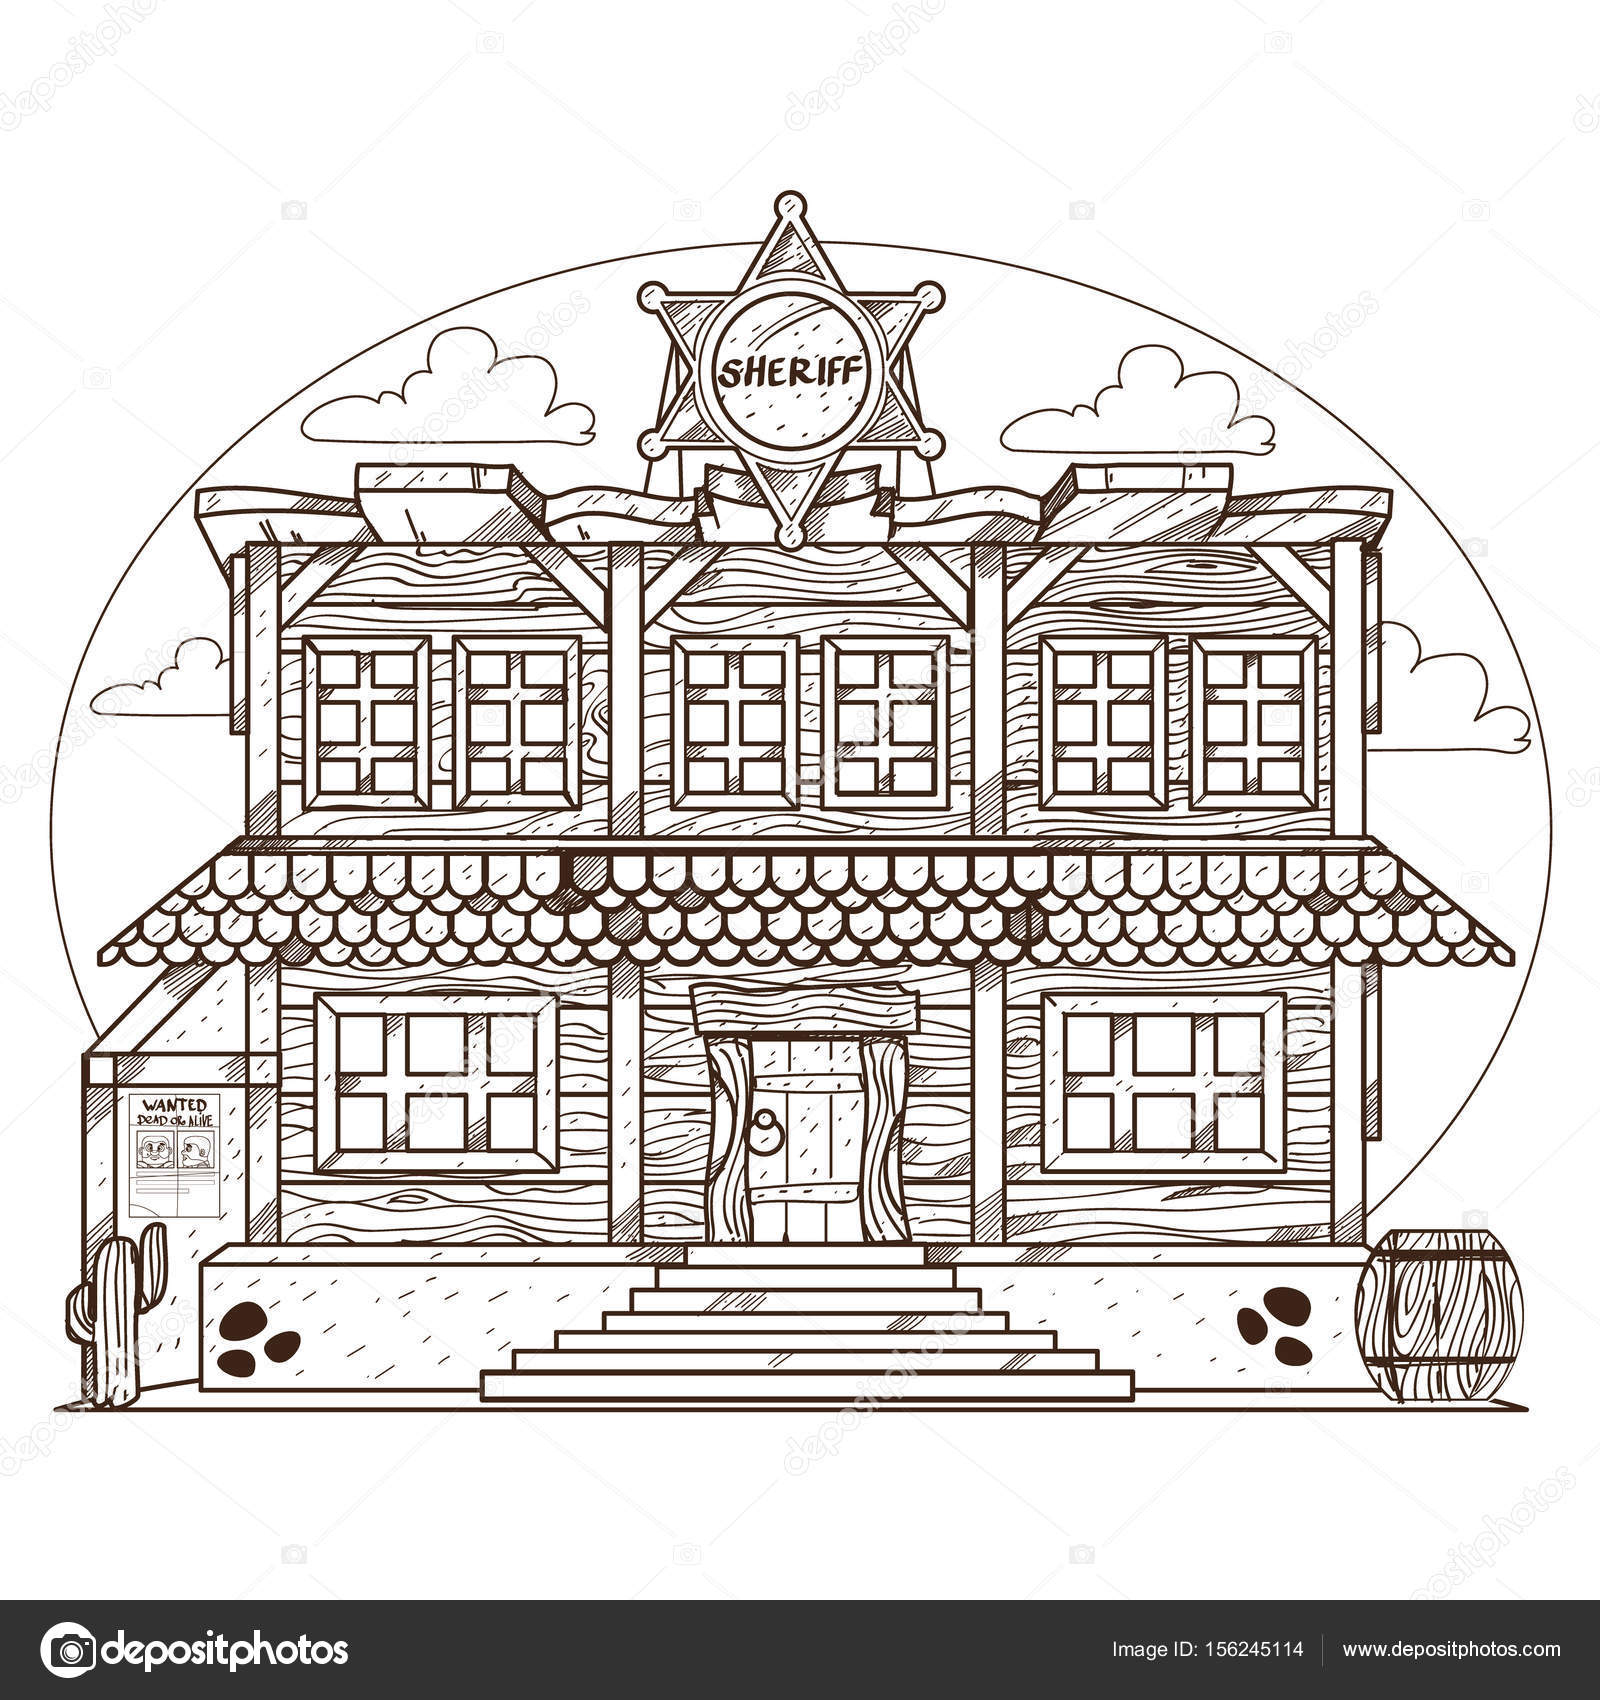 1600x1700 Wild West Outline Drawing For Coloring. Police Station. Sheriff